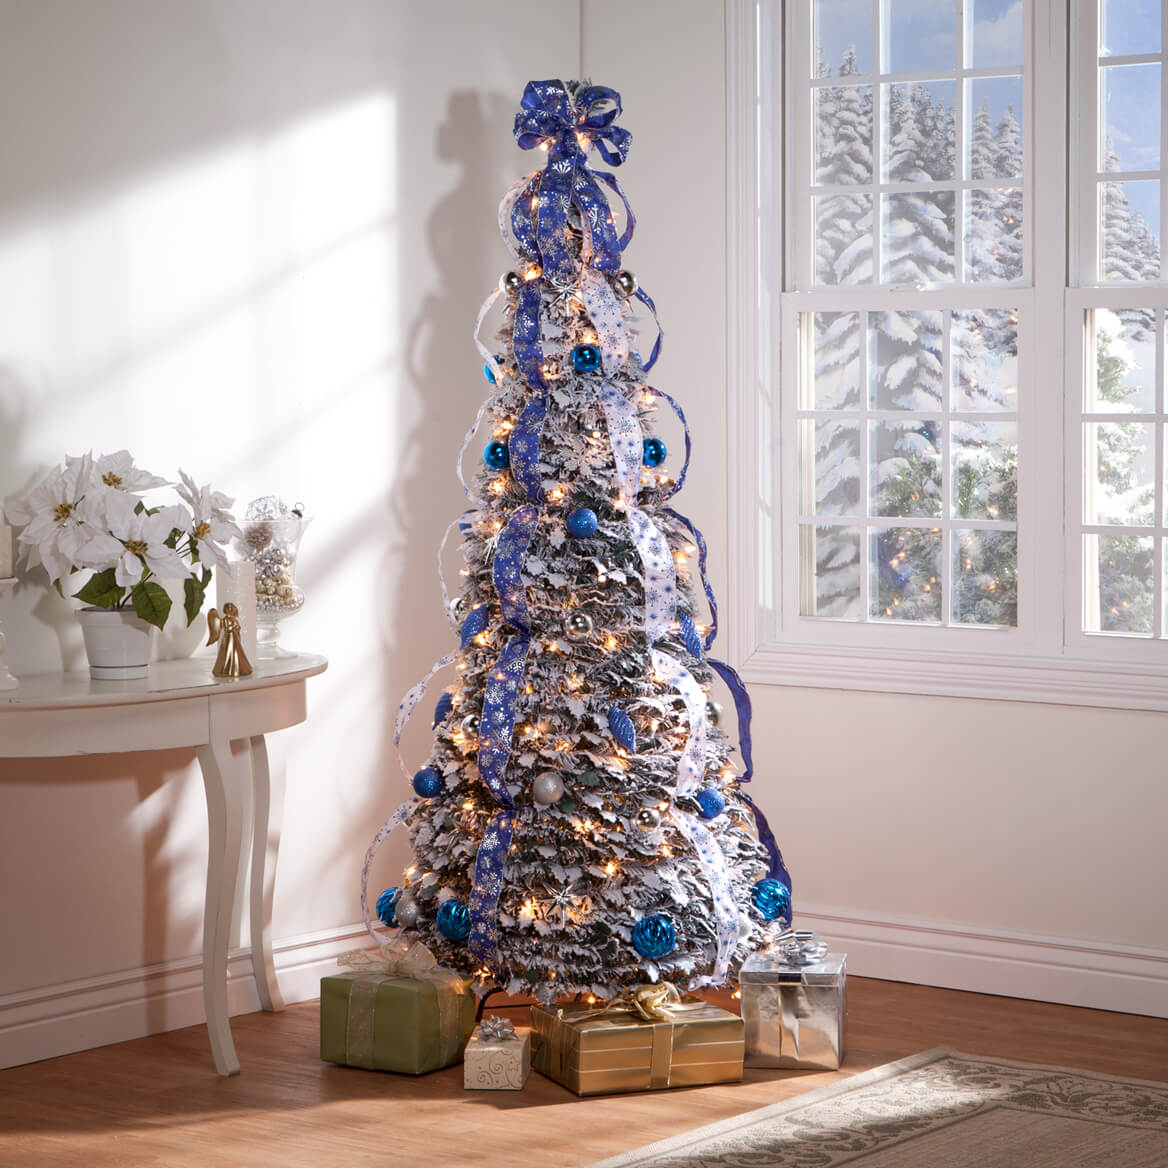 2 read reviews write a review read qa - Buy Fully Decorated Christmas Tree